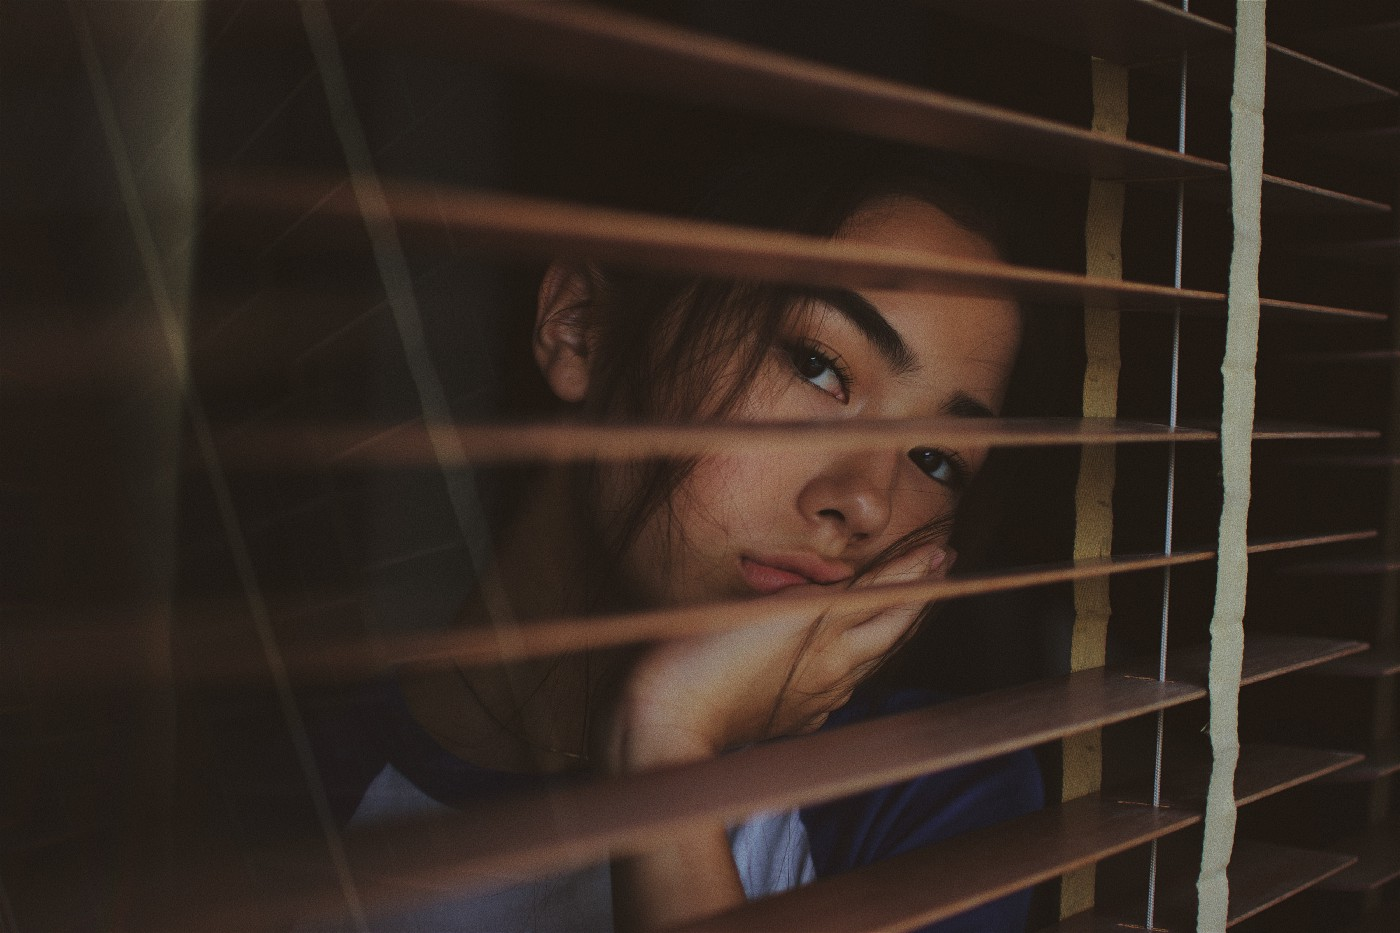 A bored looking girl looking through the blinds.